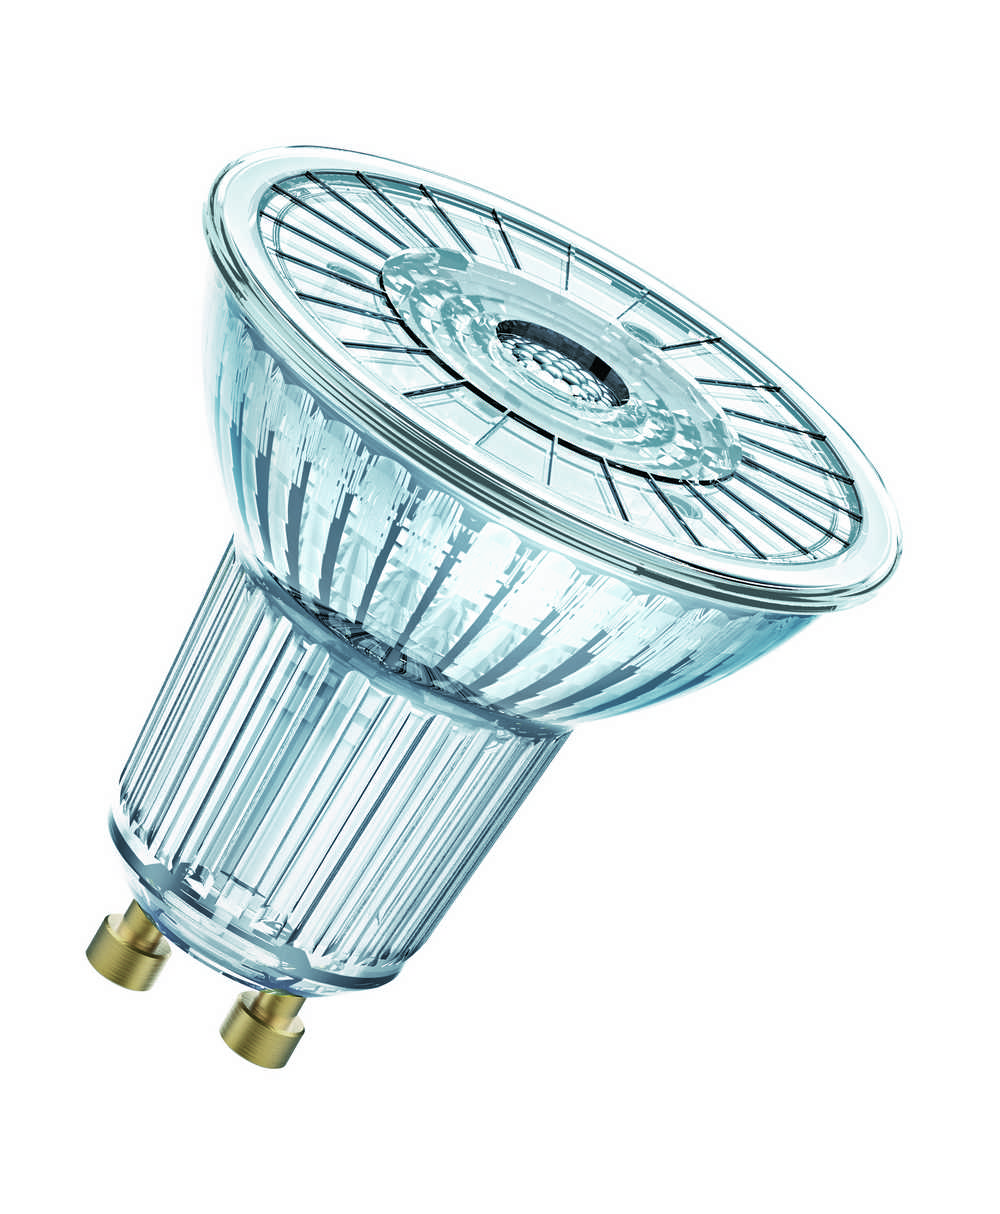 LED STAR GU10 4.3W WW 2ST